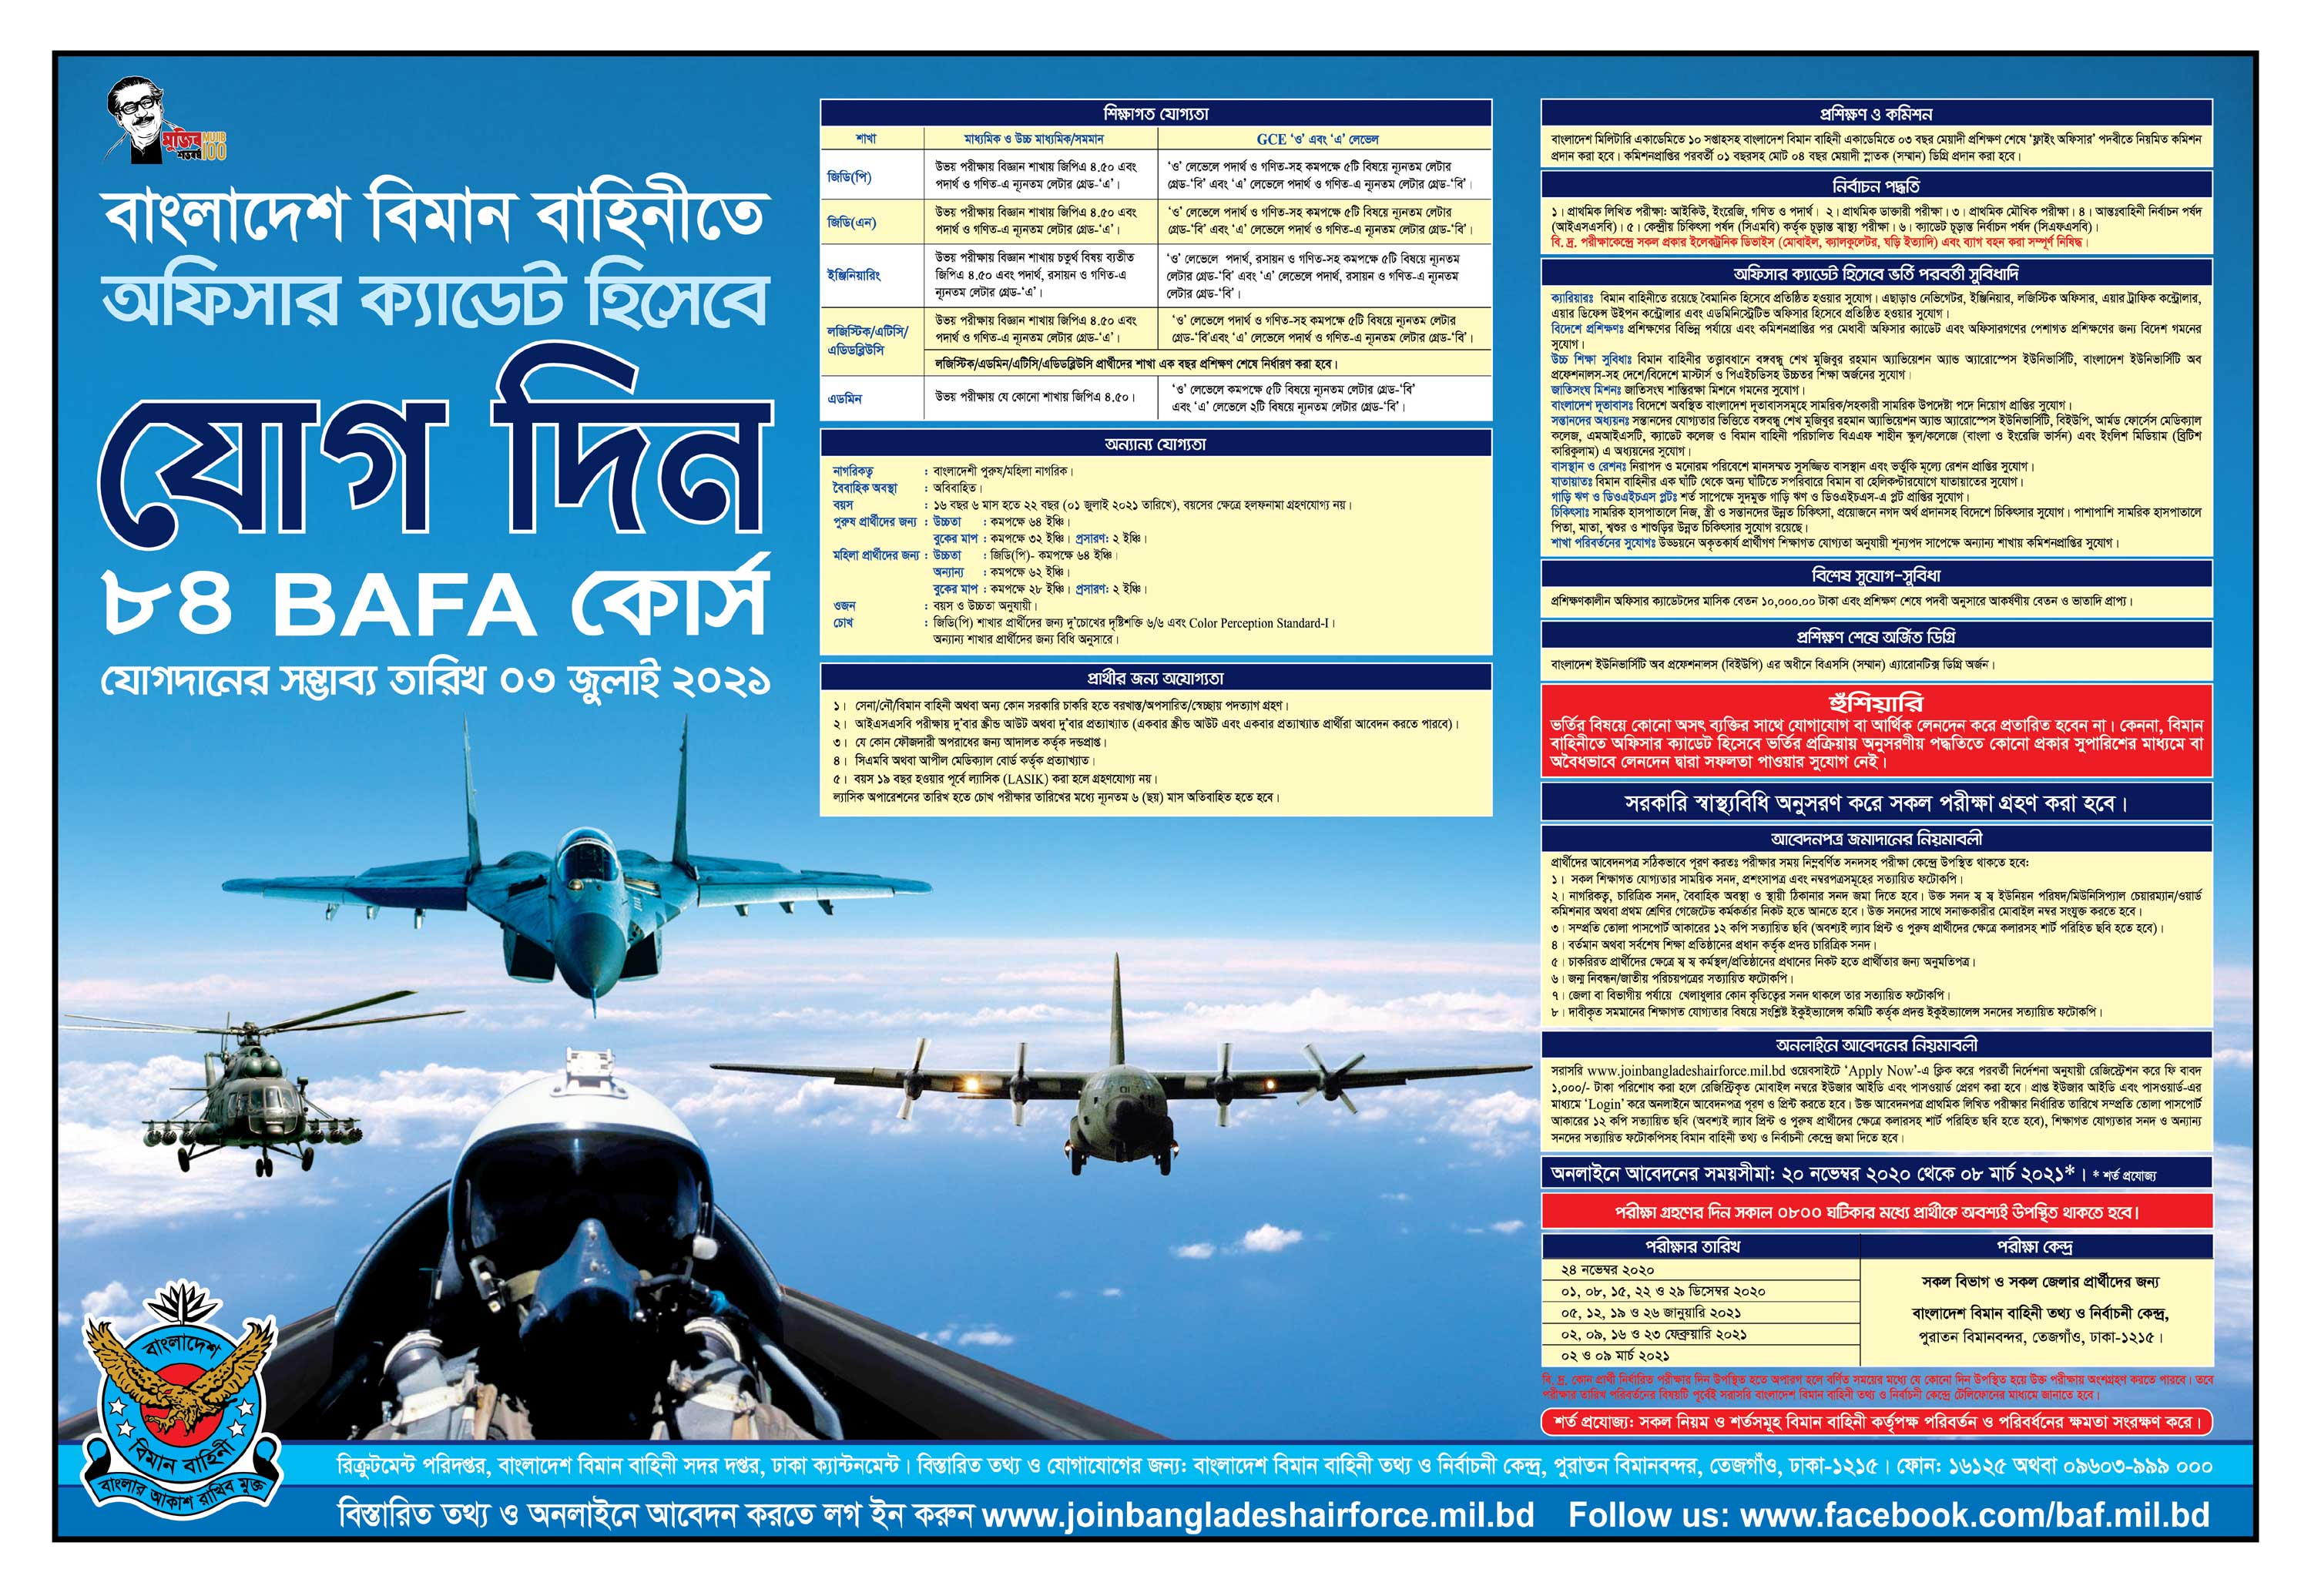 Bangladesh Air Force Officer Cadet 84 BAFA Job Circular 2020